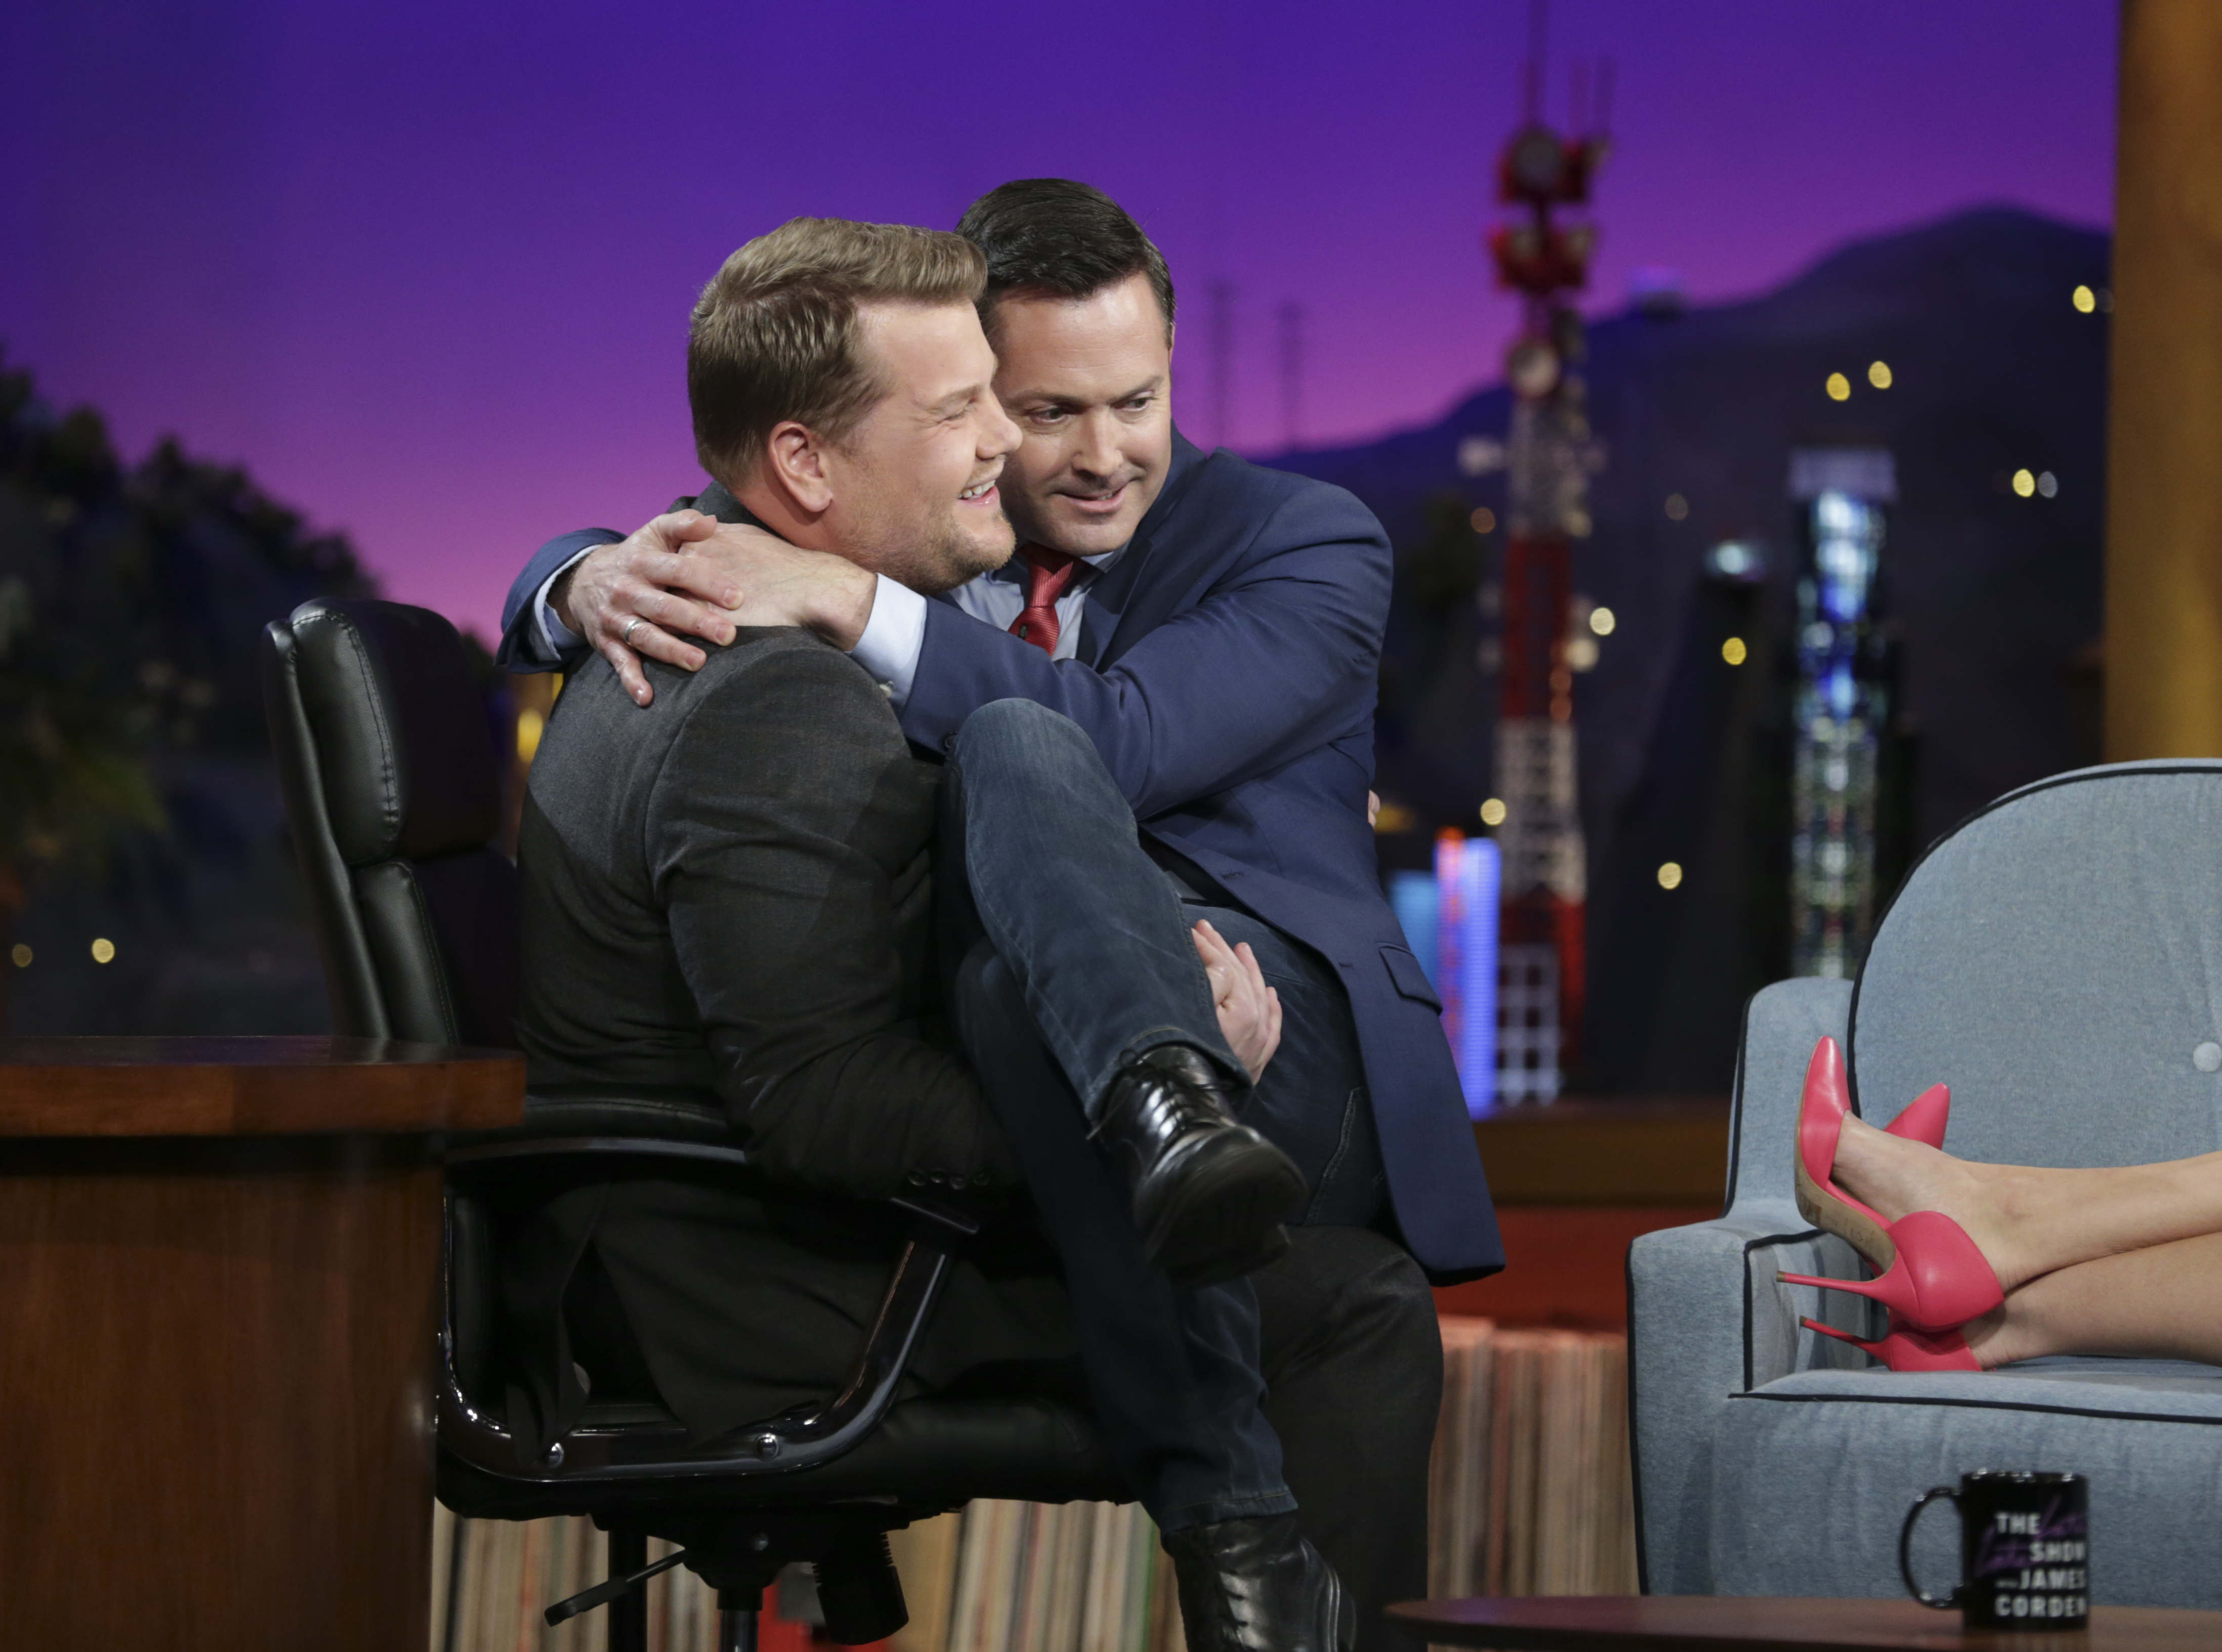 Thomas Lennon needed James' comforting embrace.